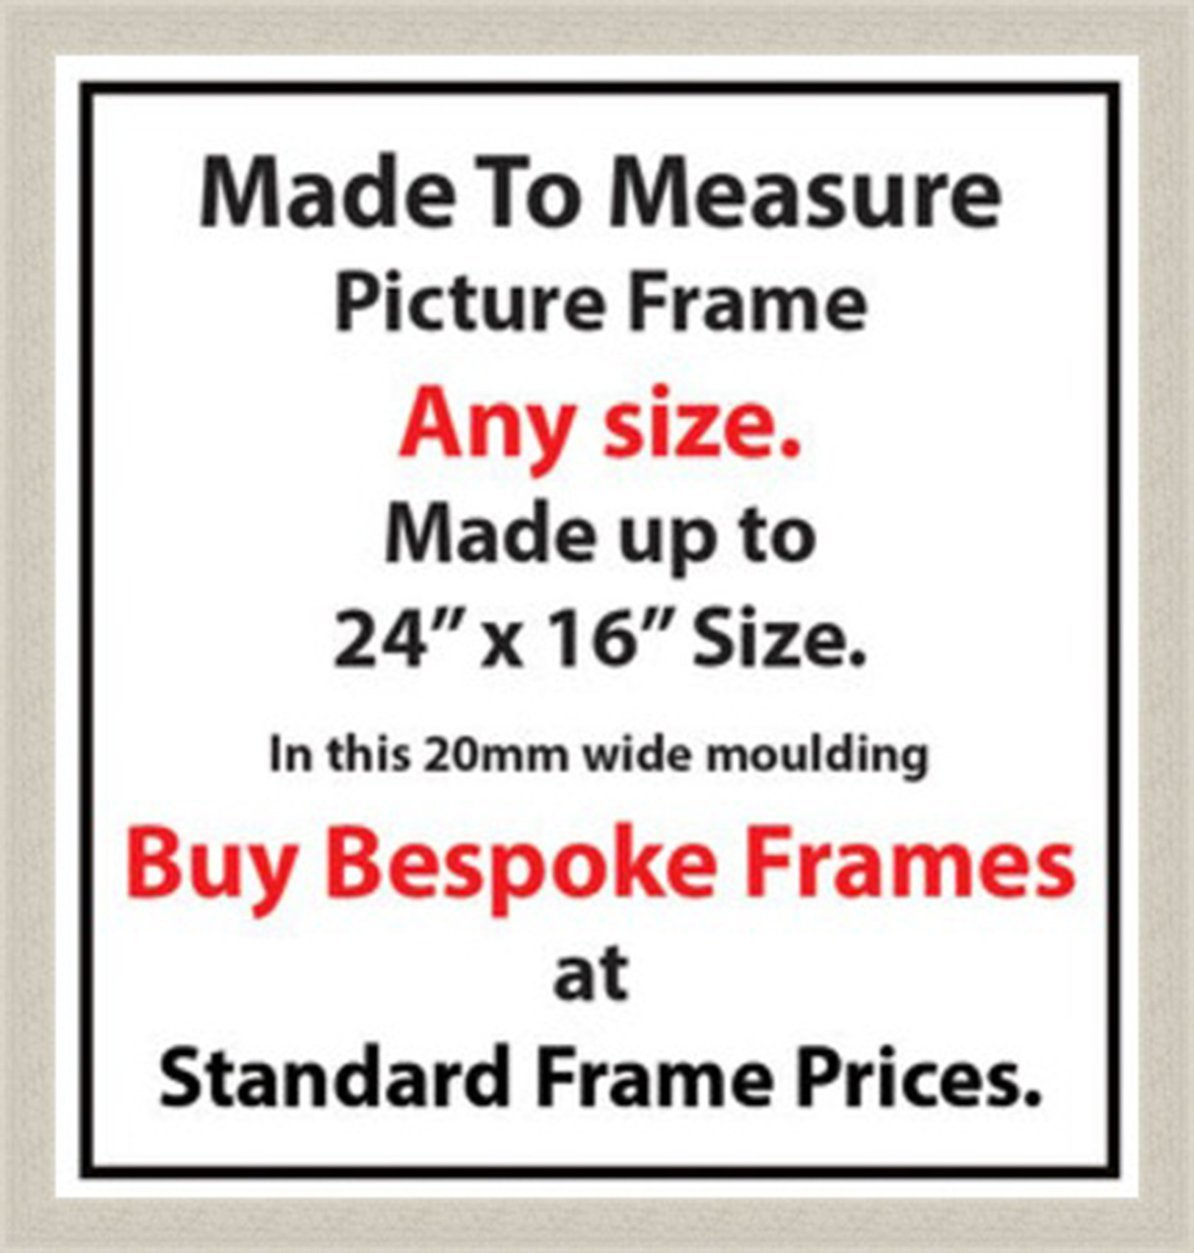 Picture Frames Online Made to size, Bespoke made to measure picture ...